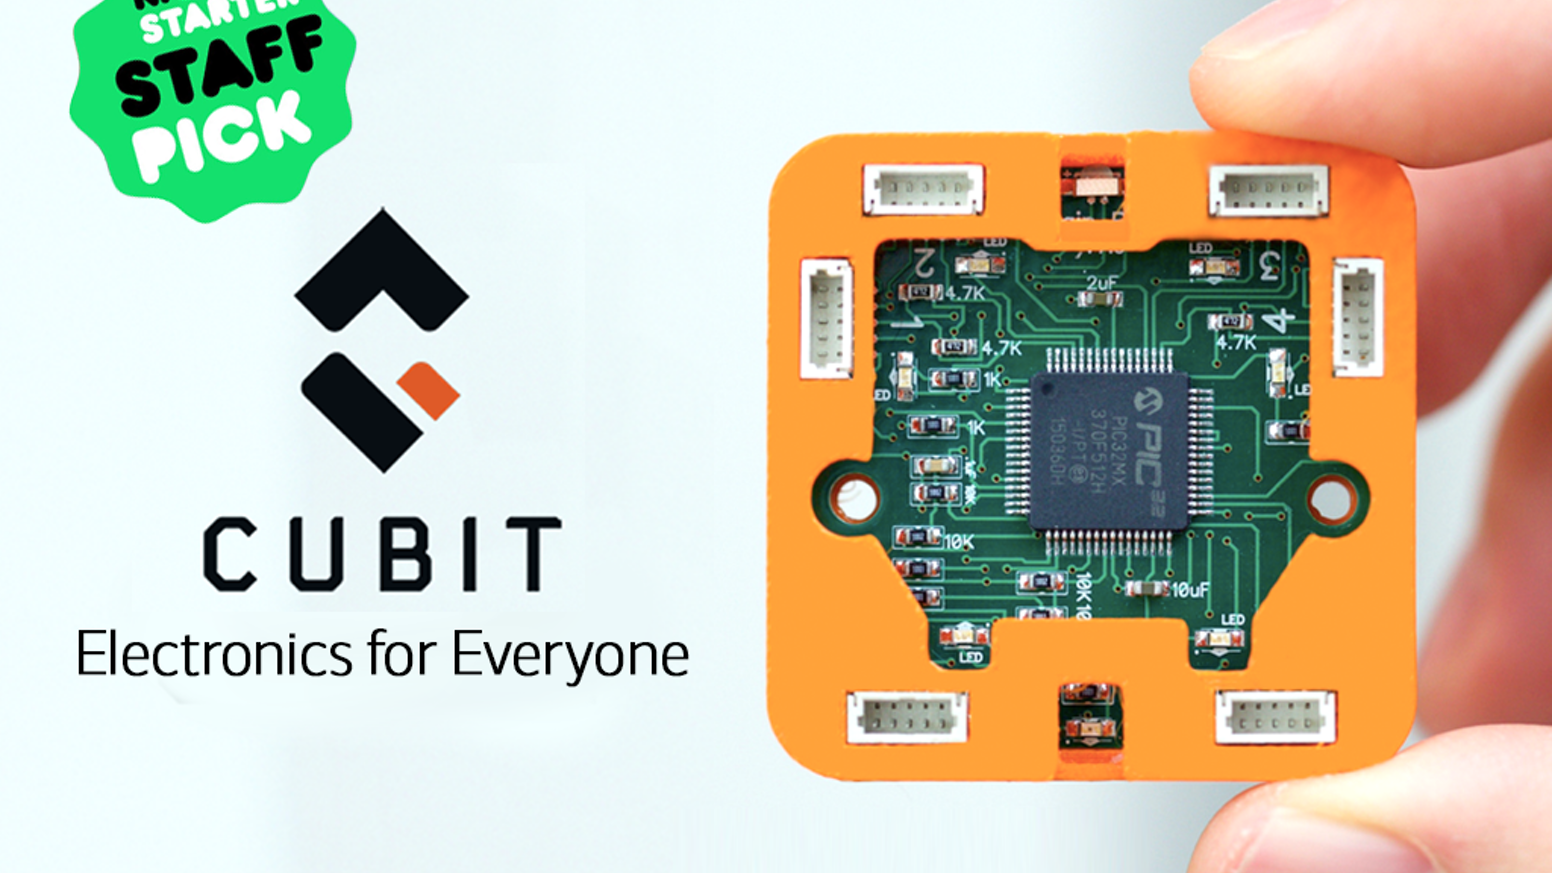 A platform that brings together plug & play hardware and drag & drop software to allow everyone to create and invent!